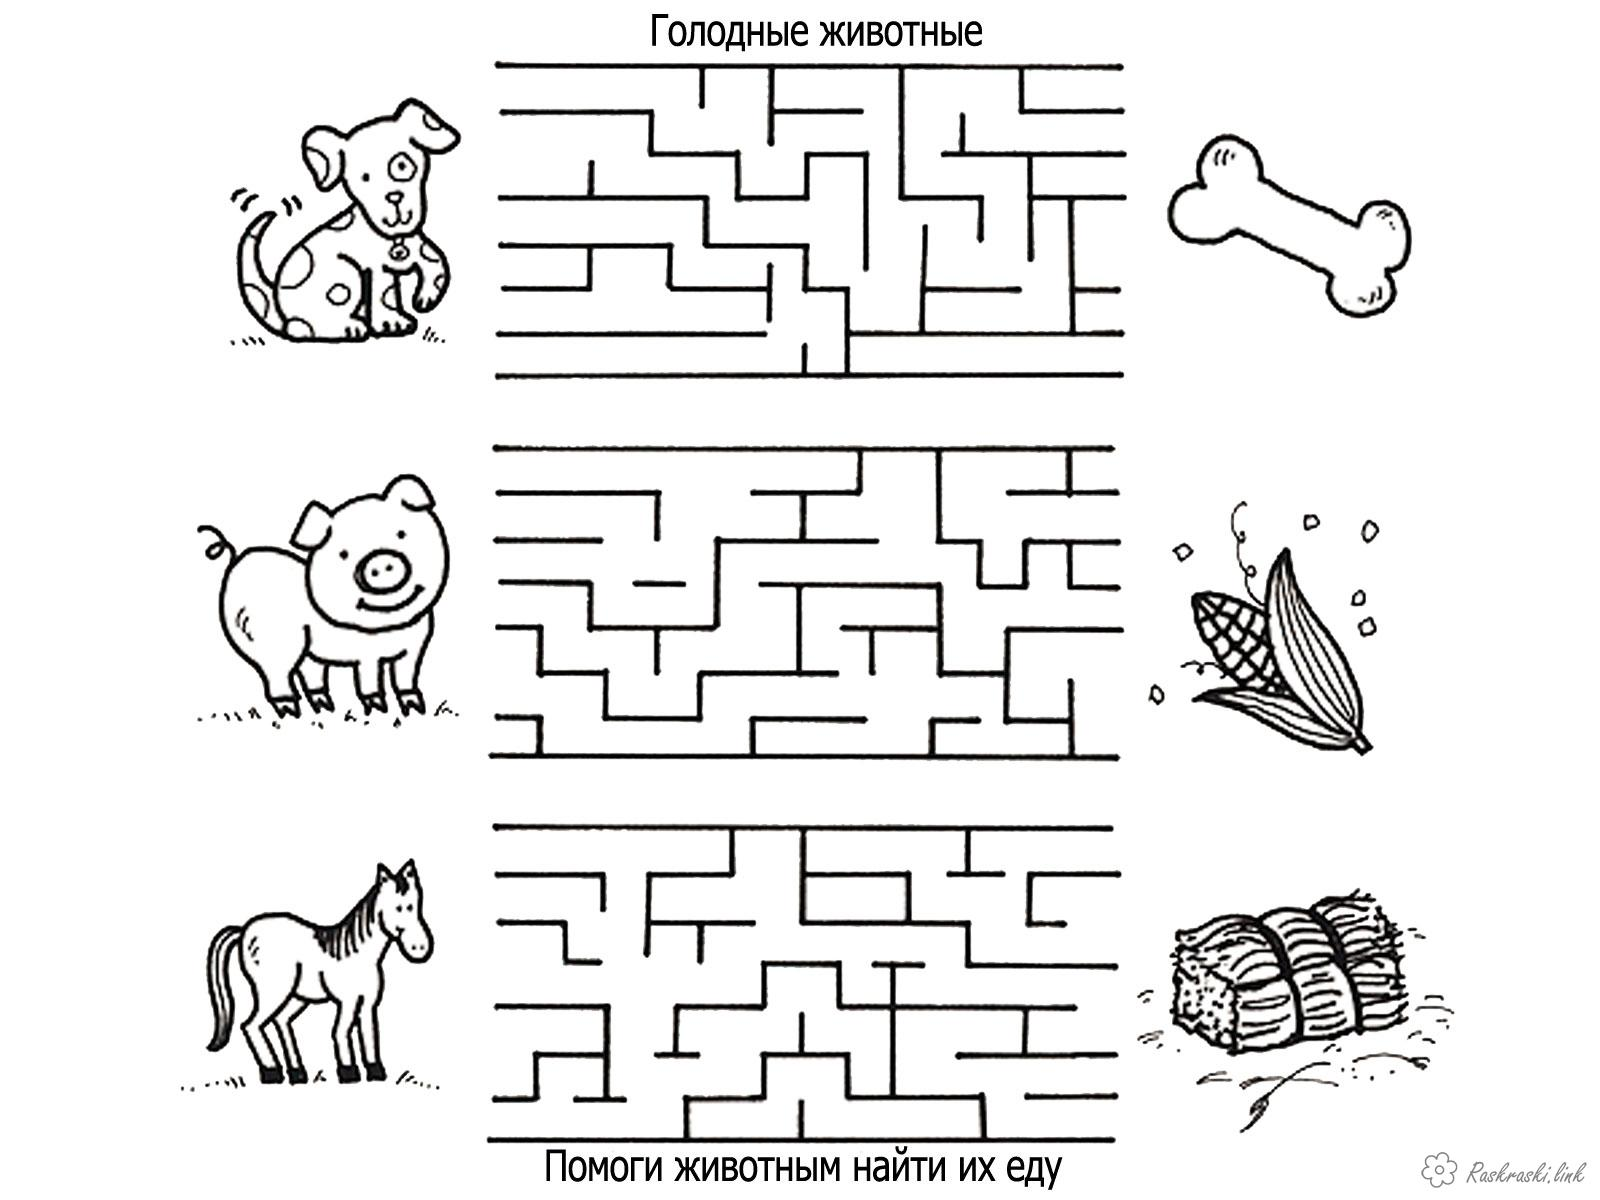 Coloring coloring pages maze Maze, feed the animals, lead the animals through the maze